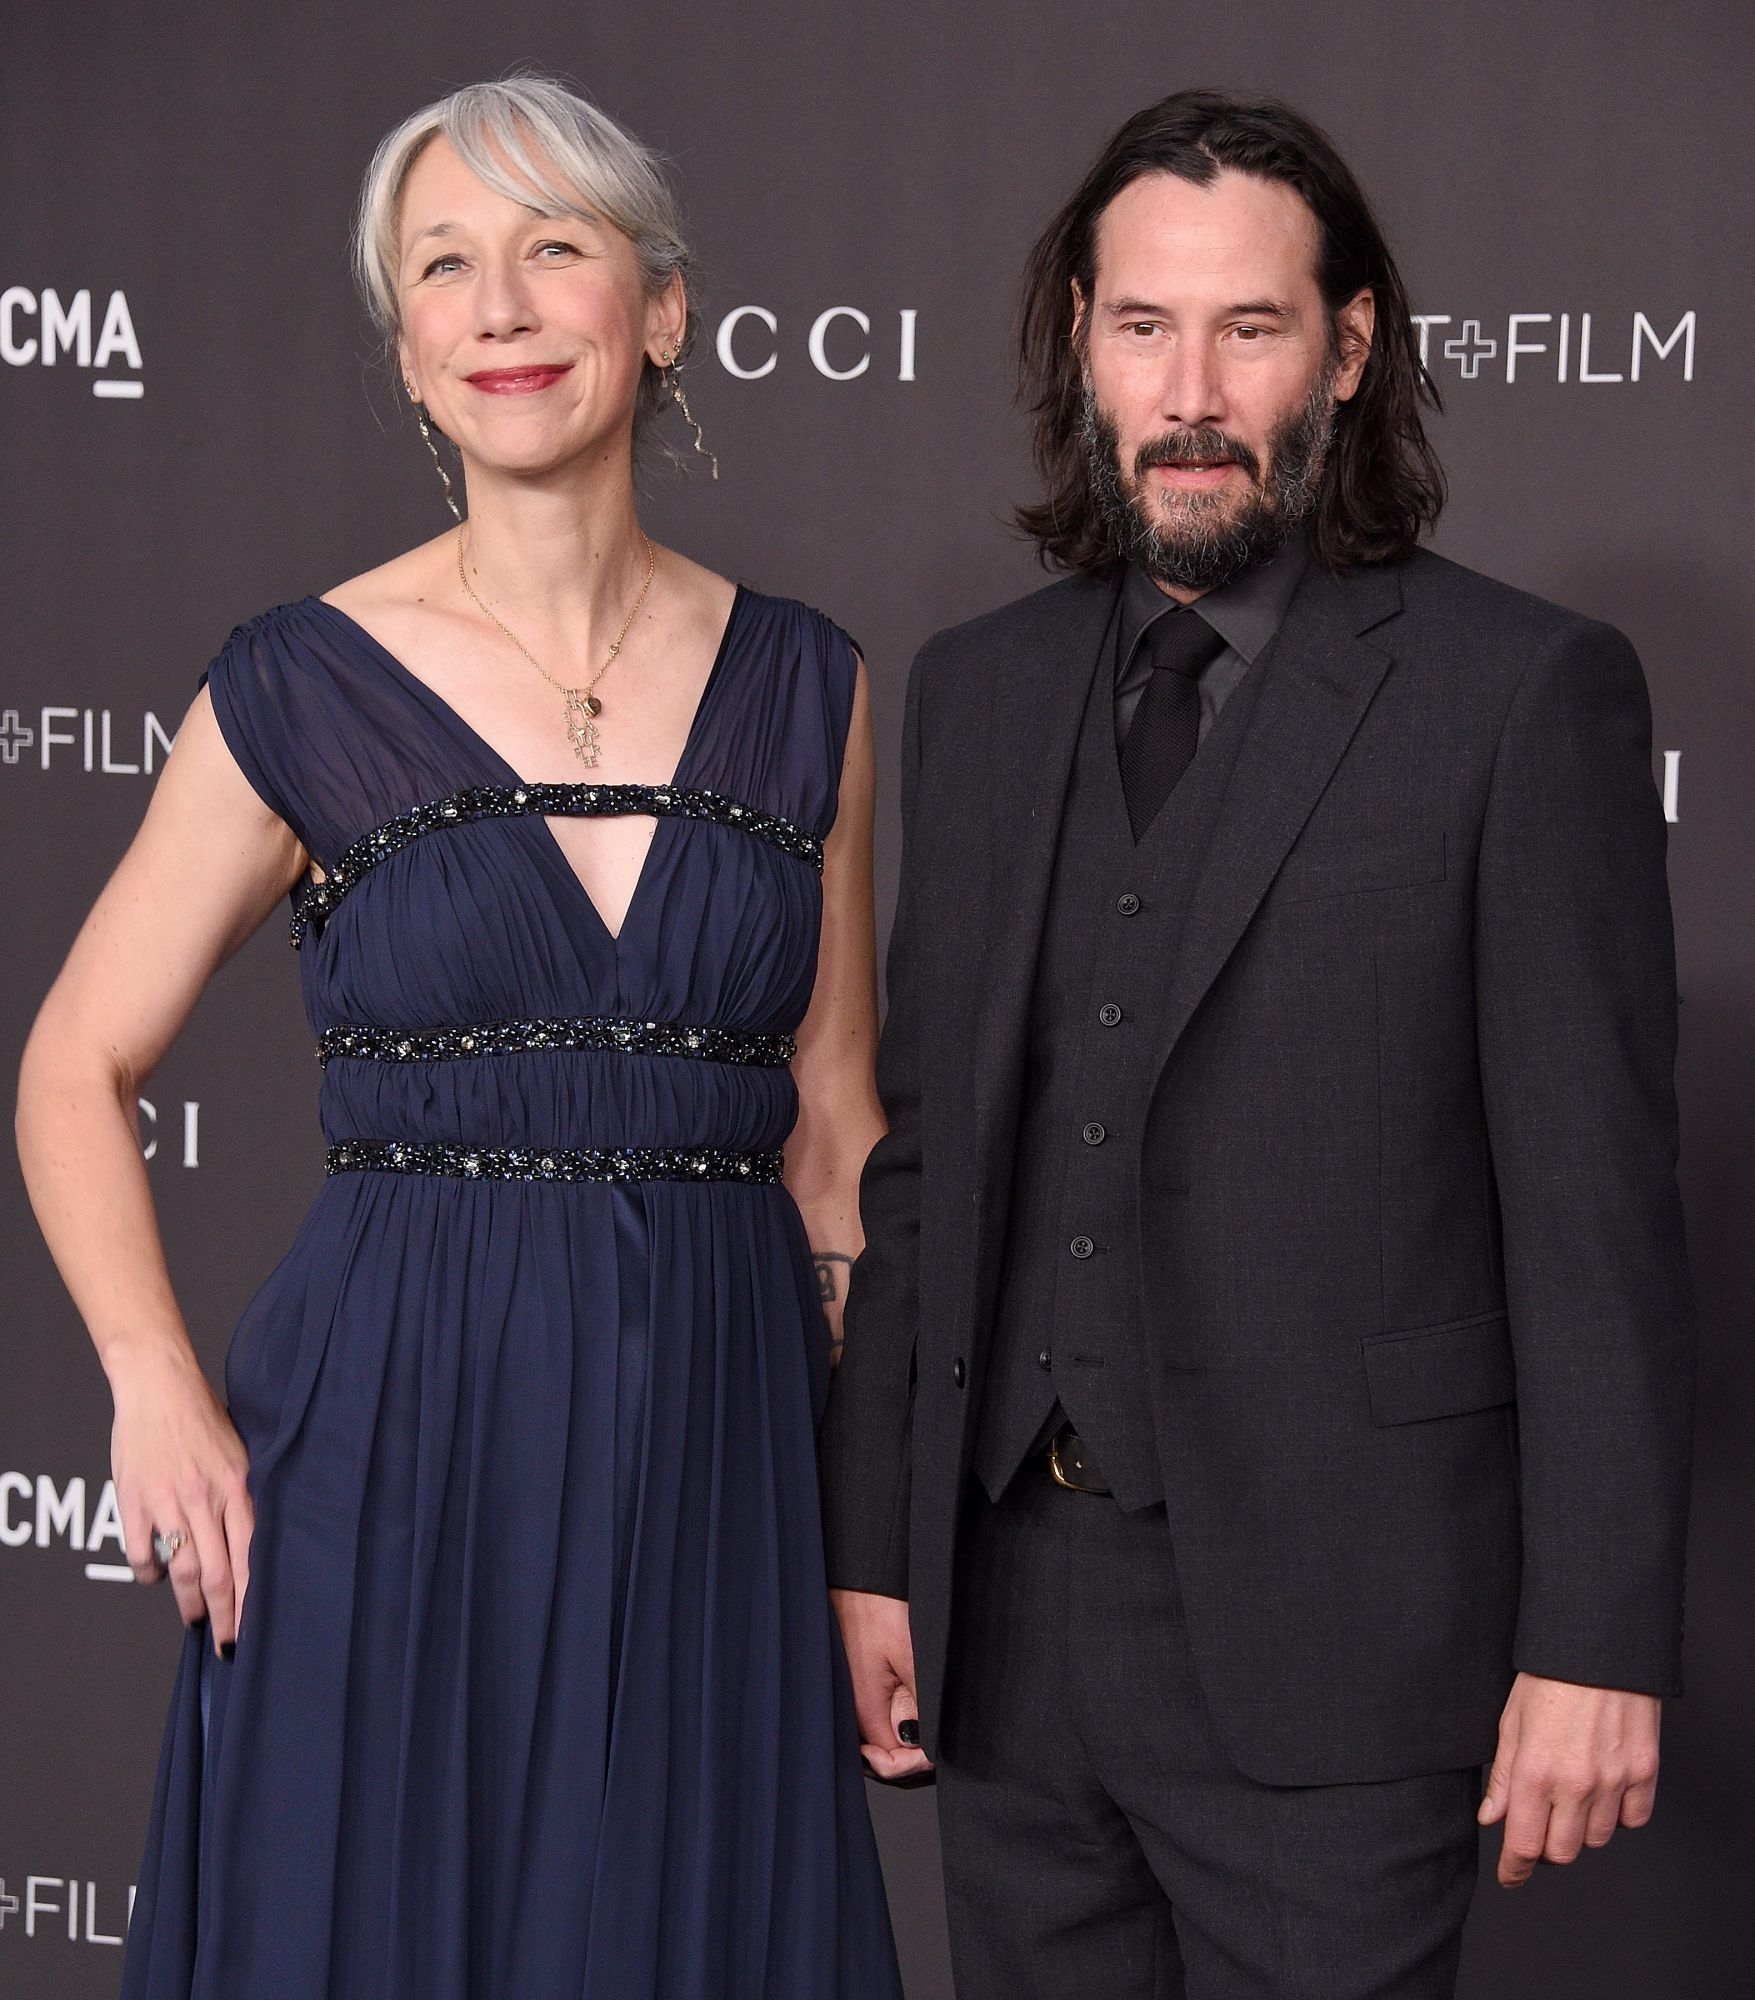 LOS ANGELES, CA - NOVEMBER 02:  Keanu Reeves and Alexandra Grant arrive at the 2019 LACMA Art + Film Gala Presented By Gucci on November 2, 2019 in Los Angeles, California.  (Photo by Gregg DeGuire/FilmMagic)